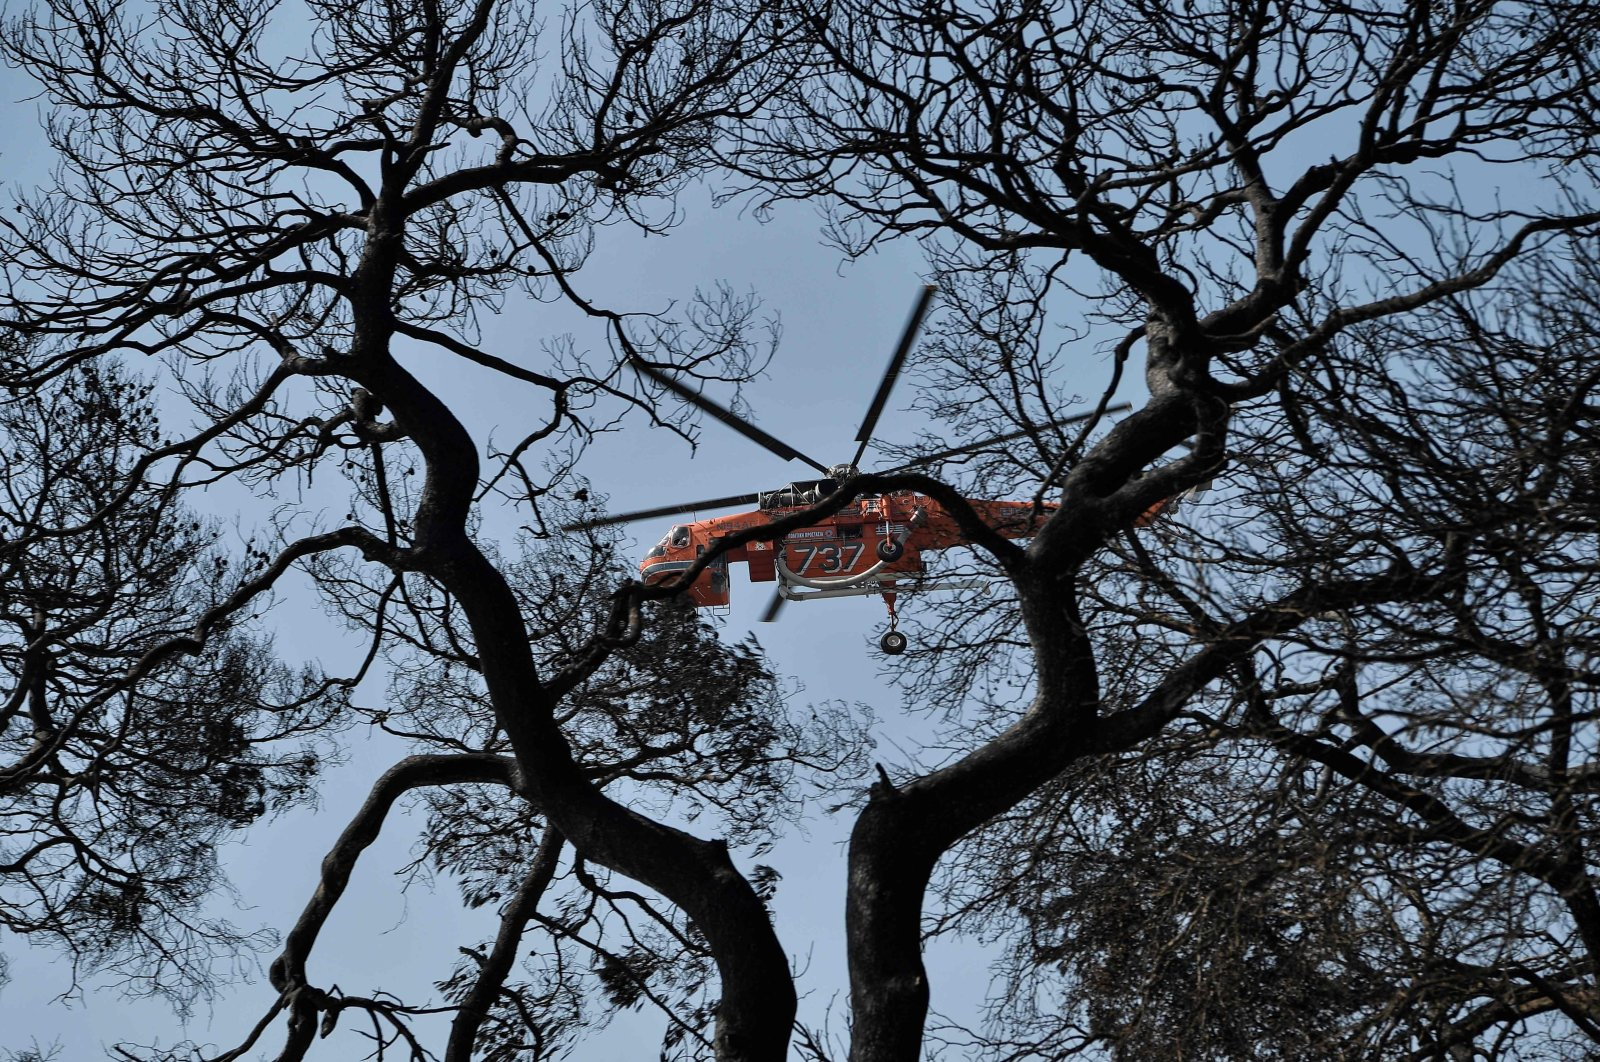 A firefighter plane flies over a burnt area at the seaside resort of Labiri (Lambiri) east of the city of Patras, Greece, on Aug. 1, 2021. (AFP Photo)